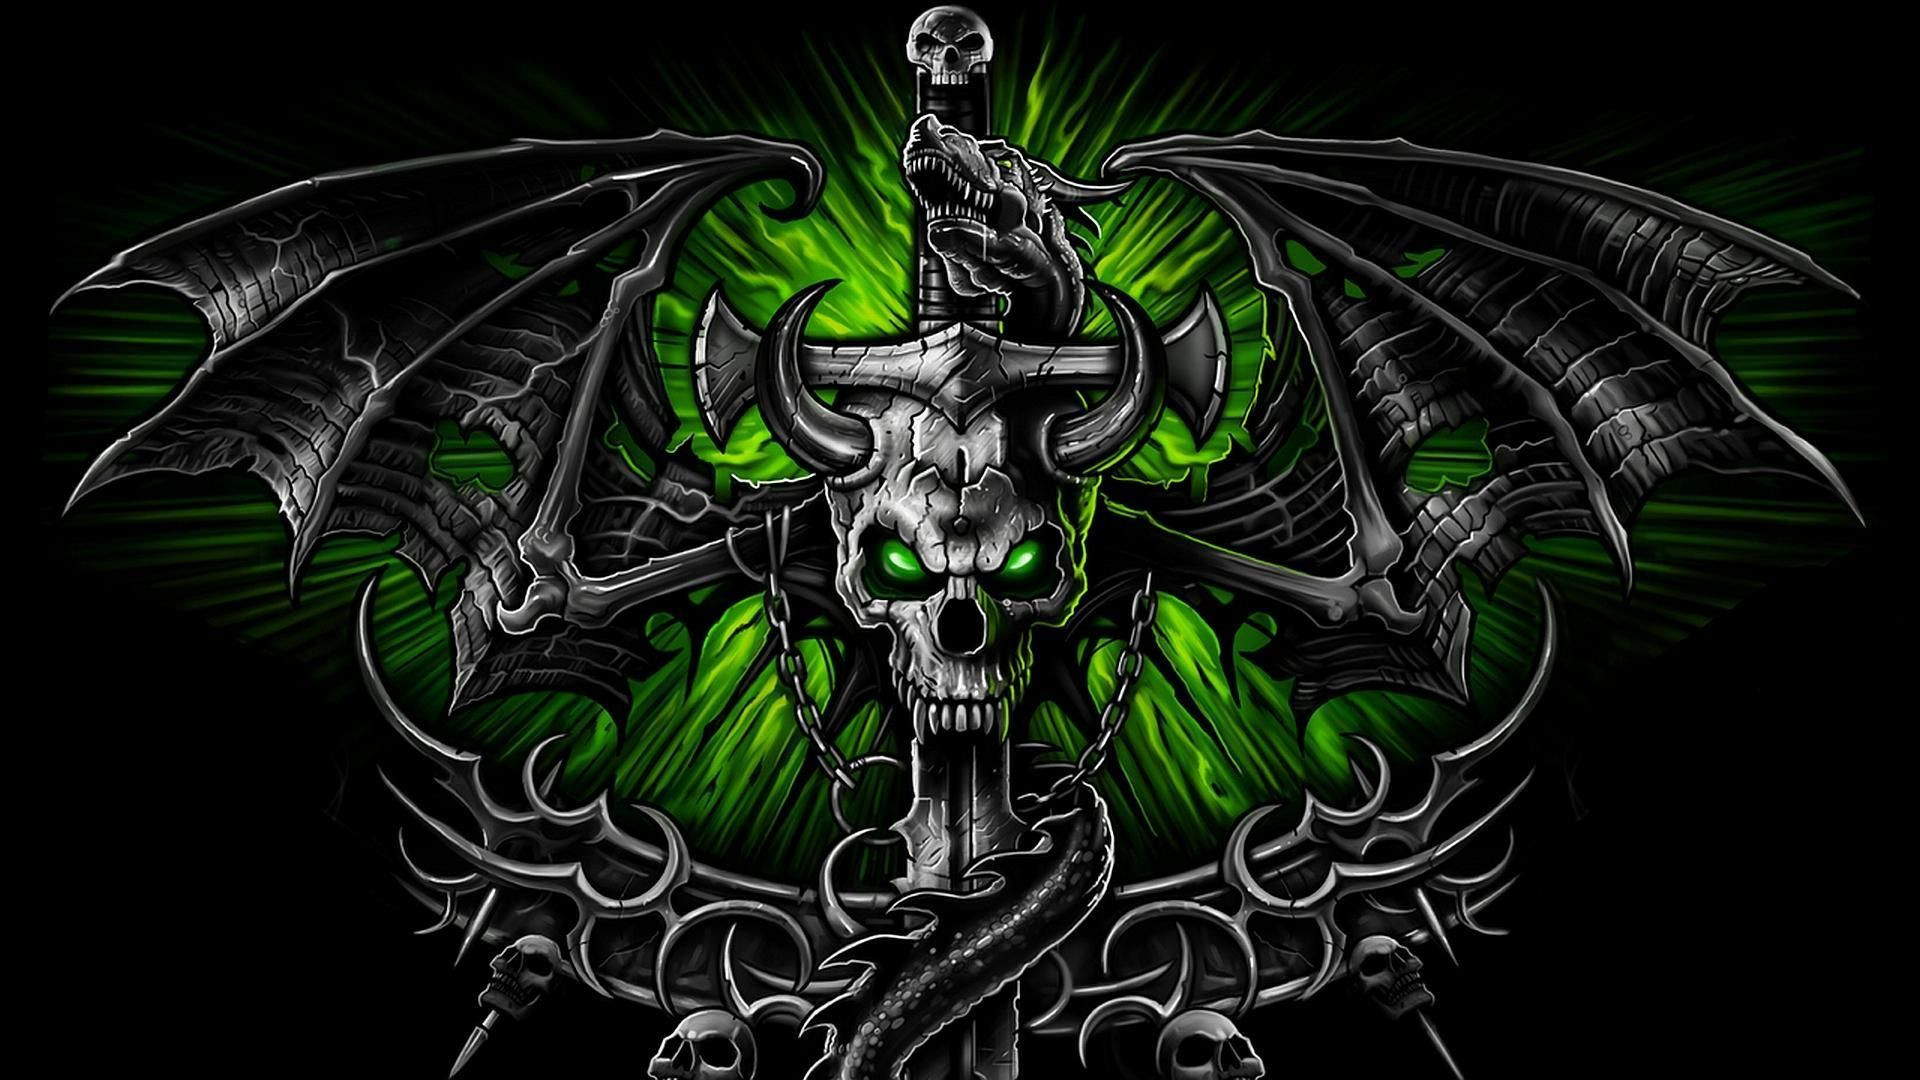 1920x1080 Hd skull wallpapers for android Gallery